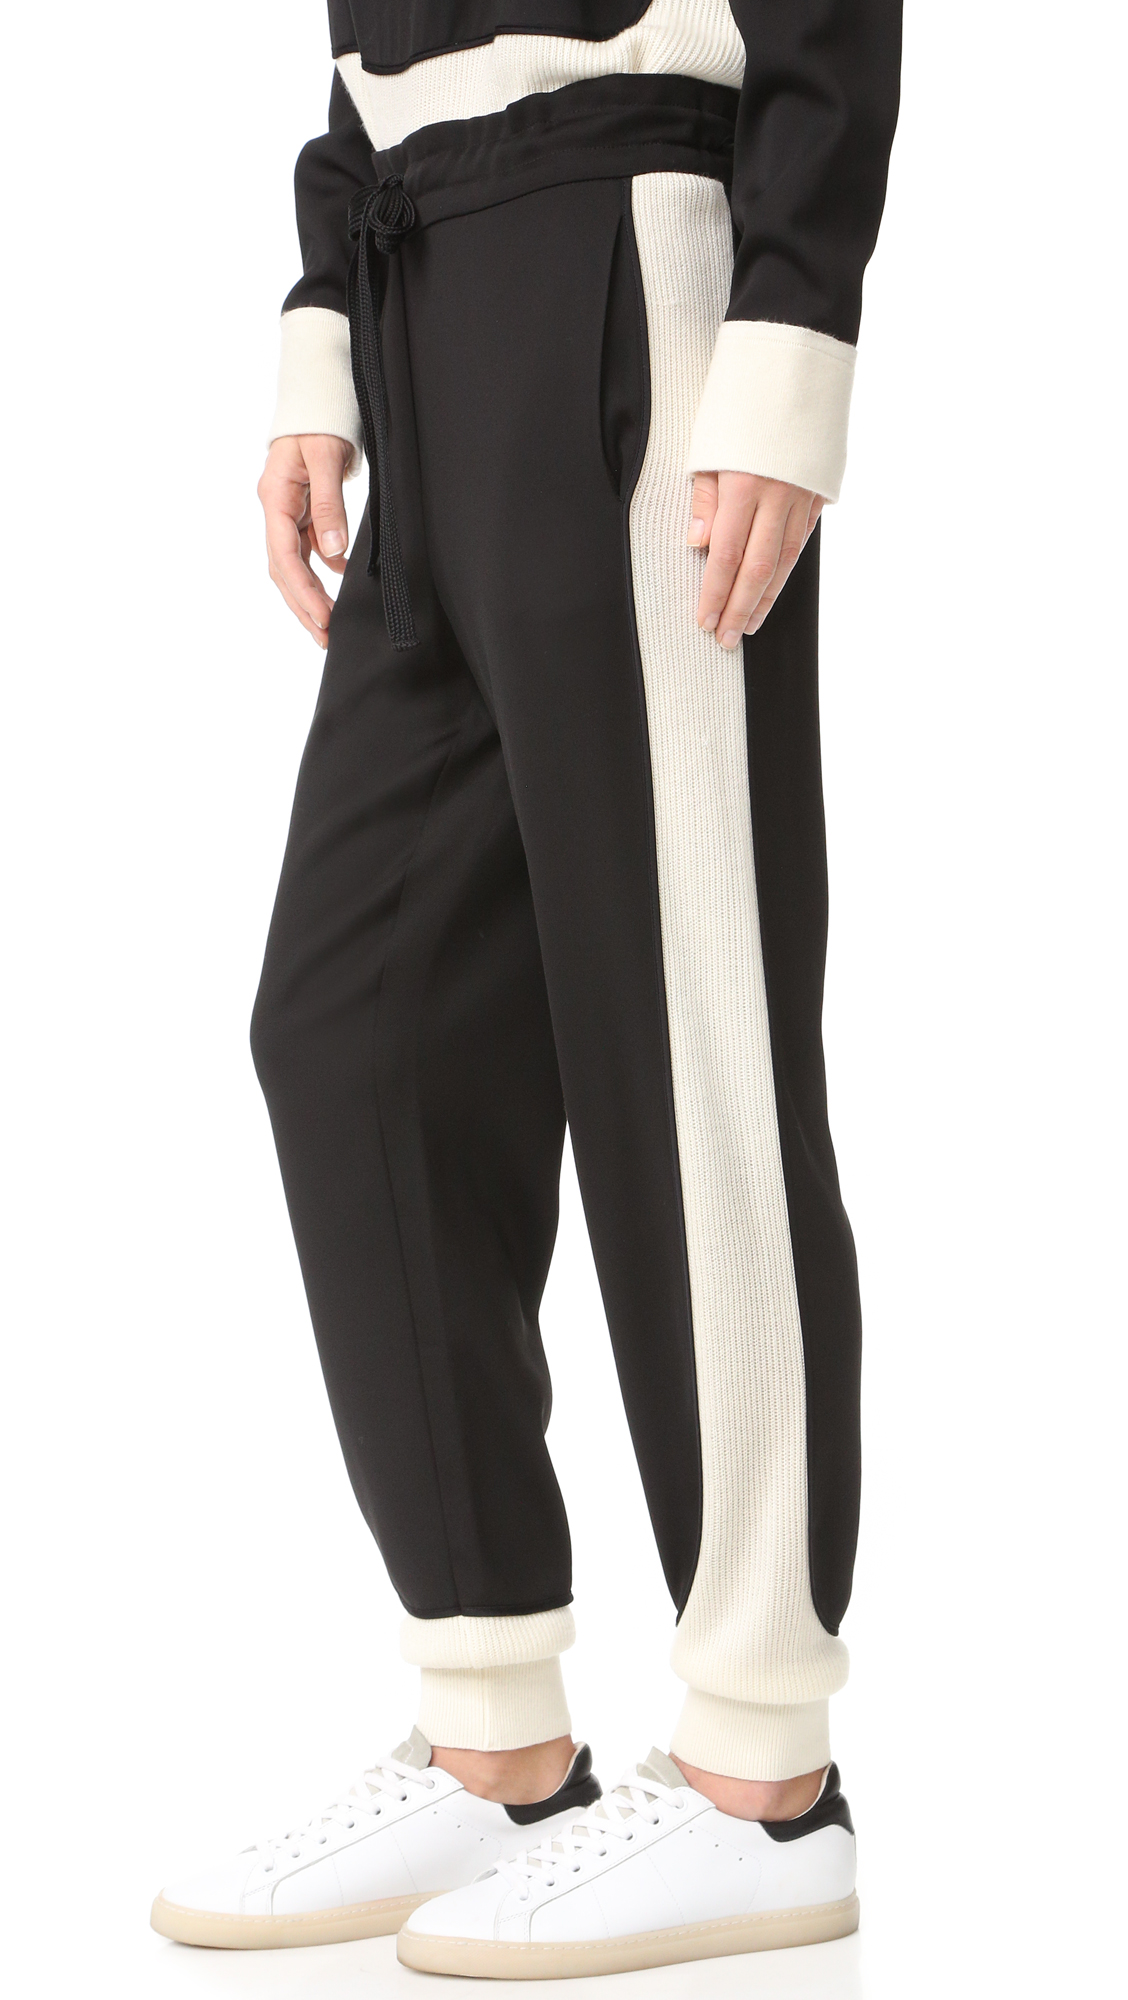 Dkny Pull On Pants - Black/Gesso at Shopbop